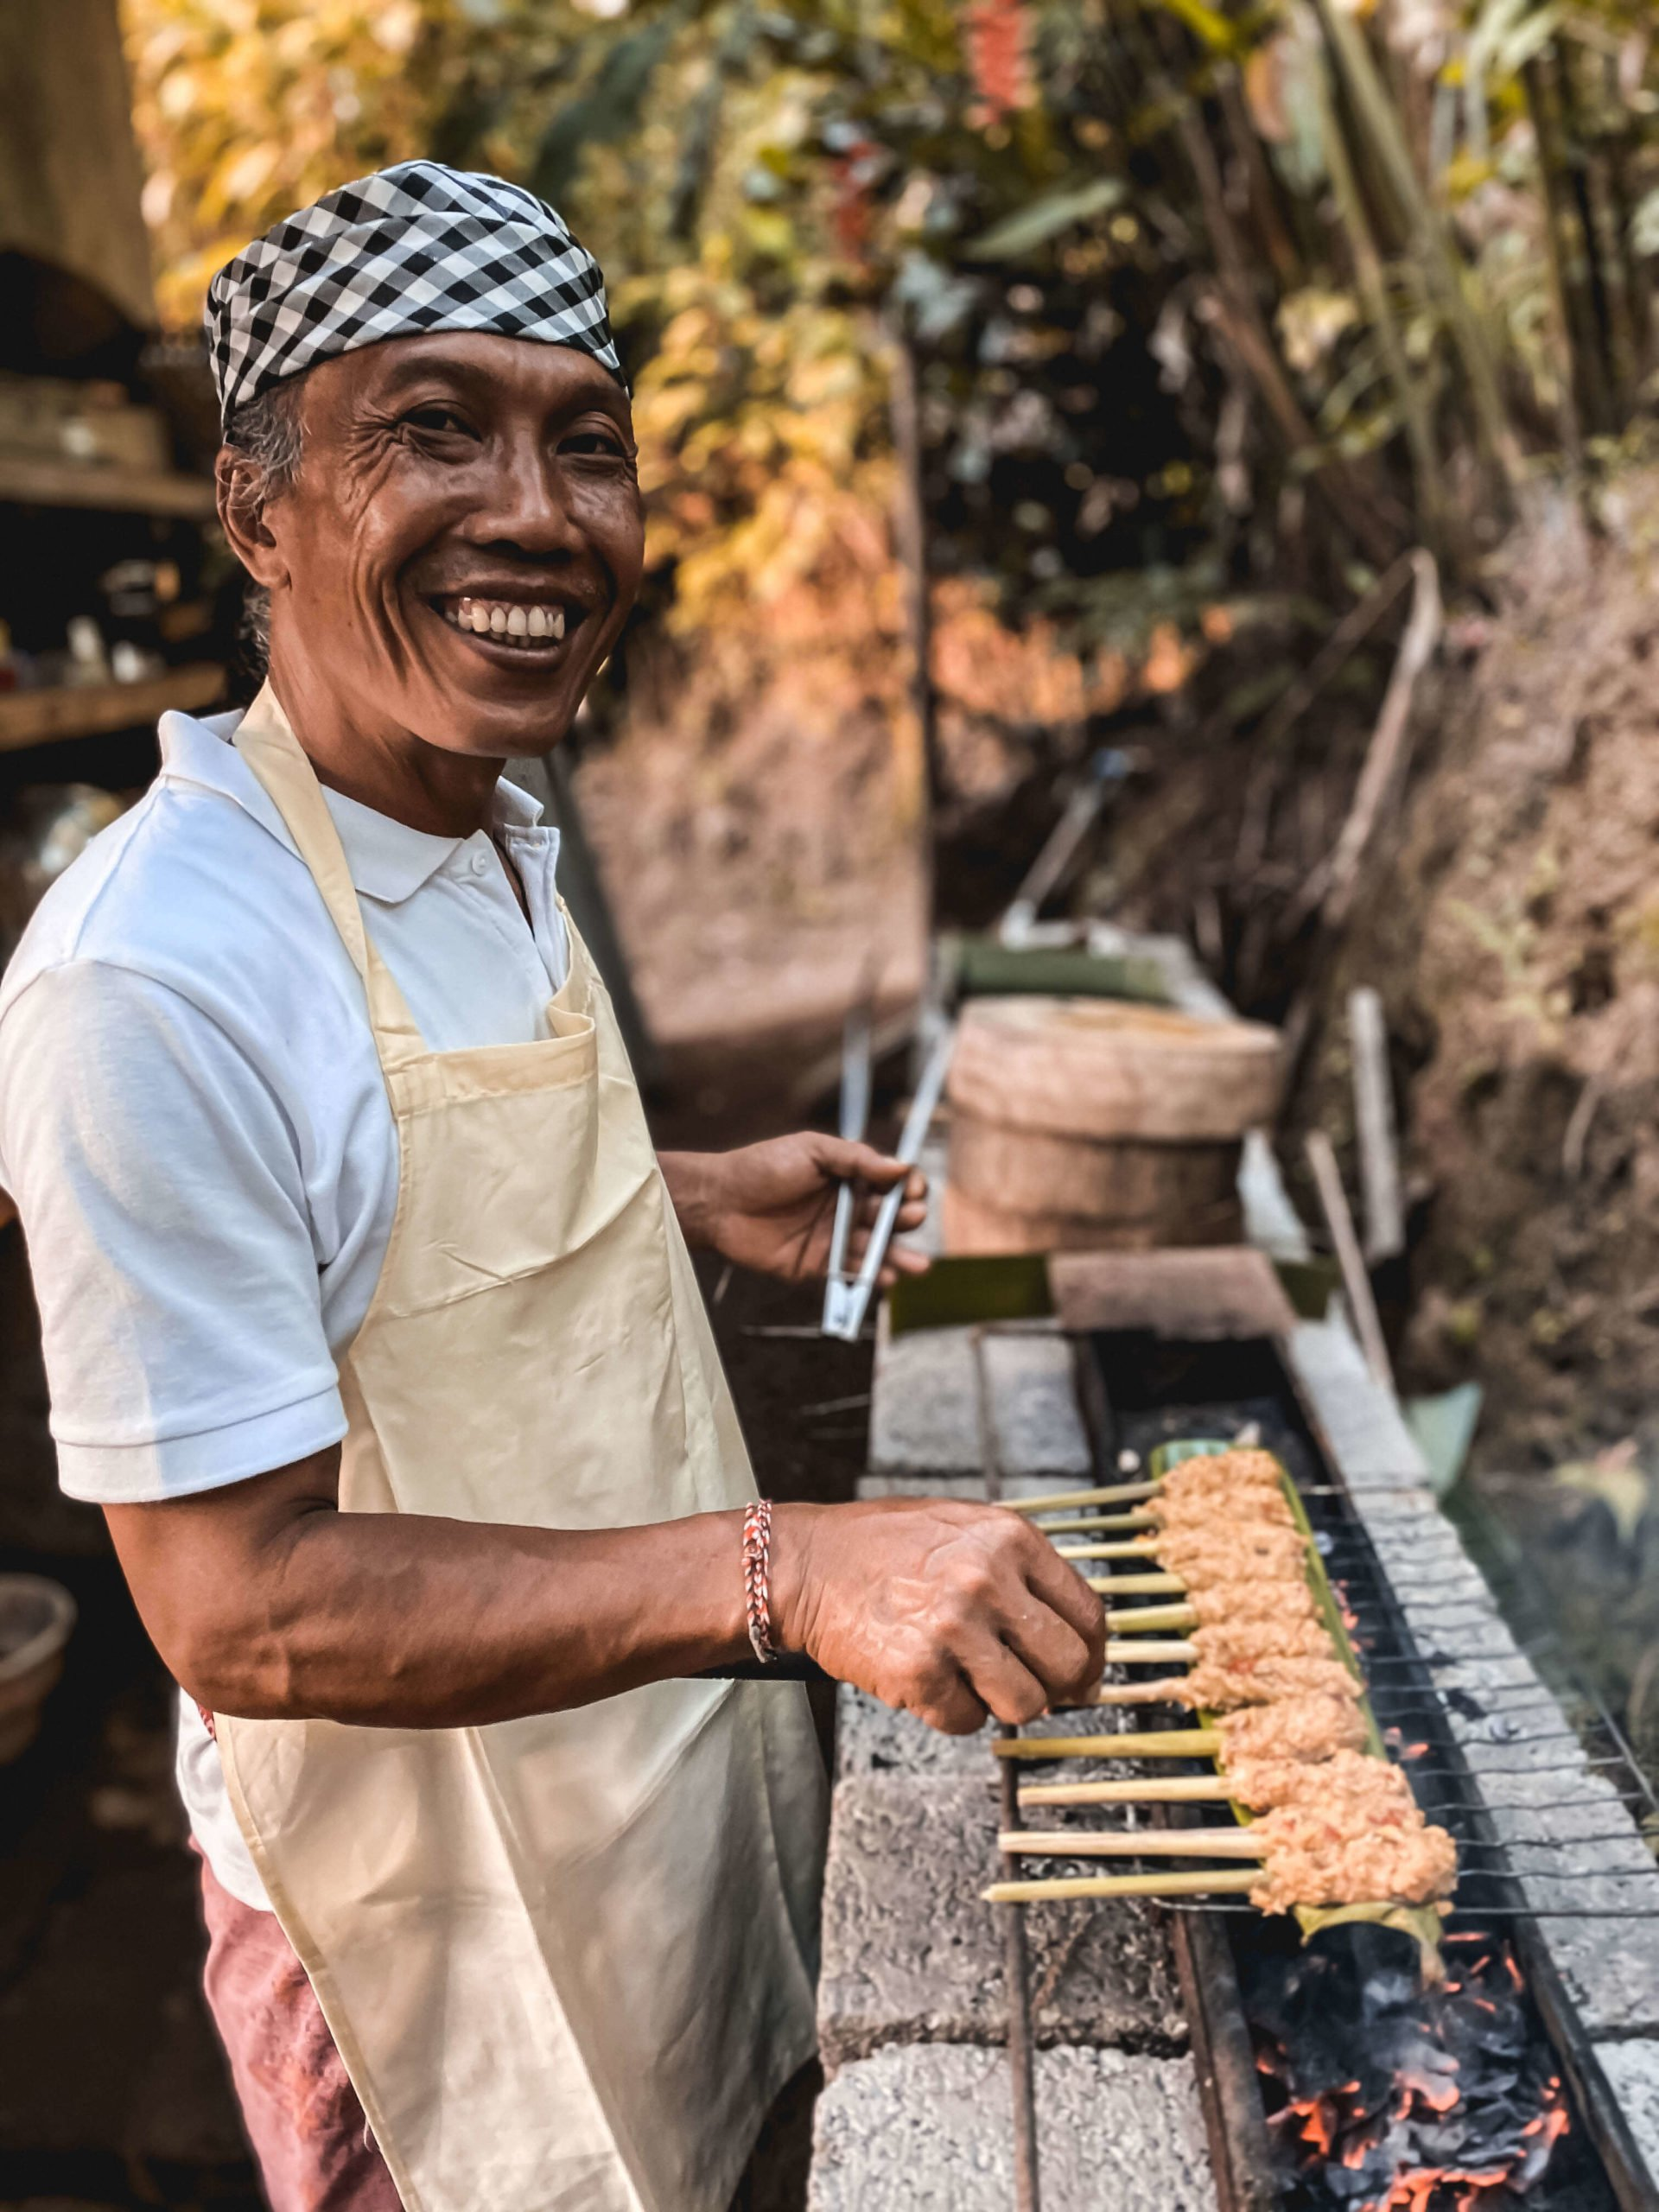 Chef cooking best food in Bali